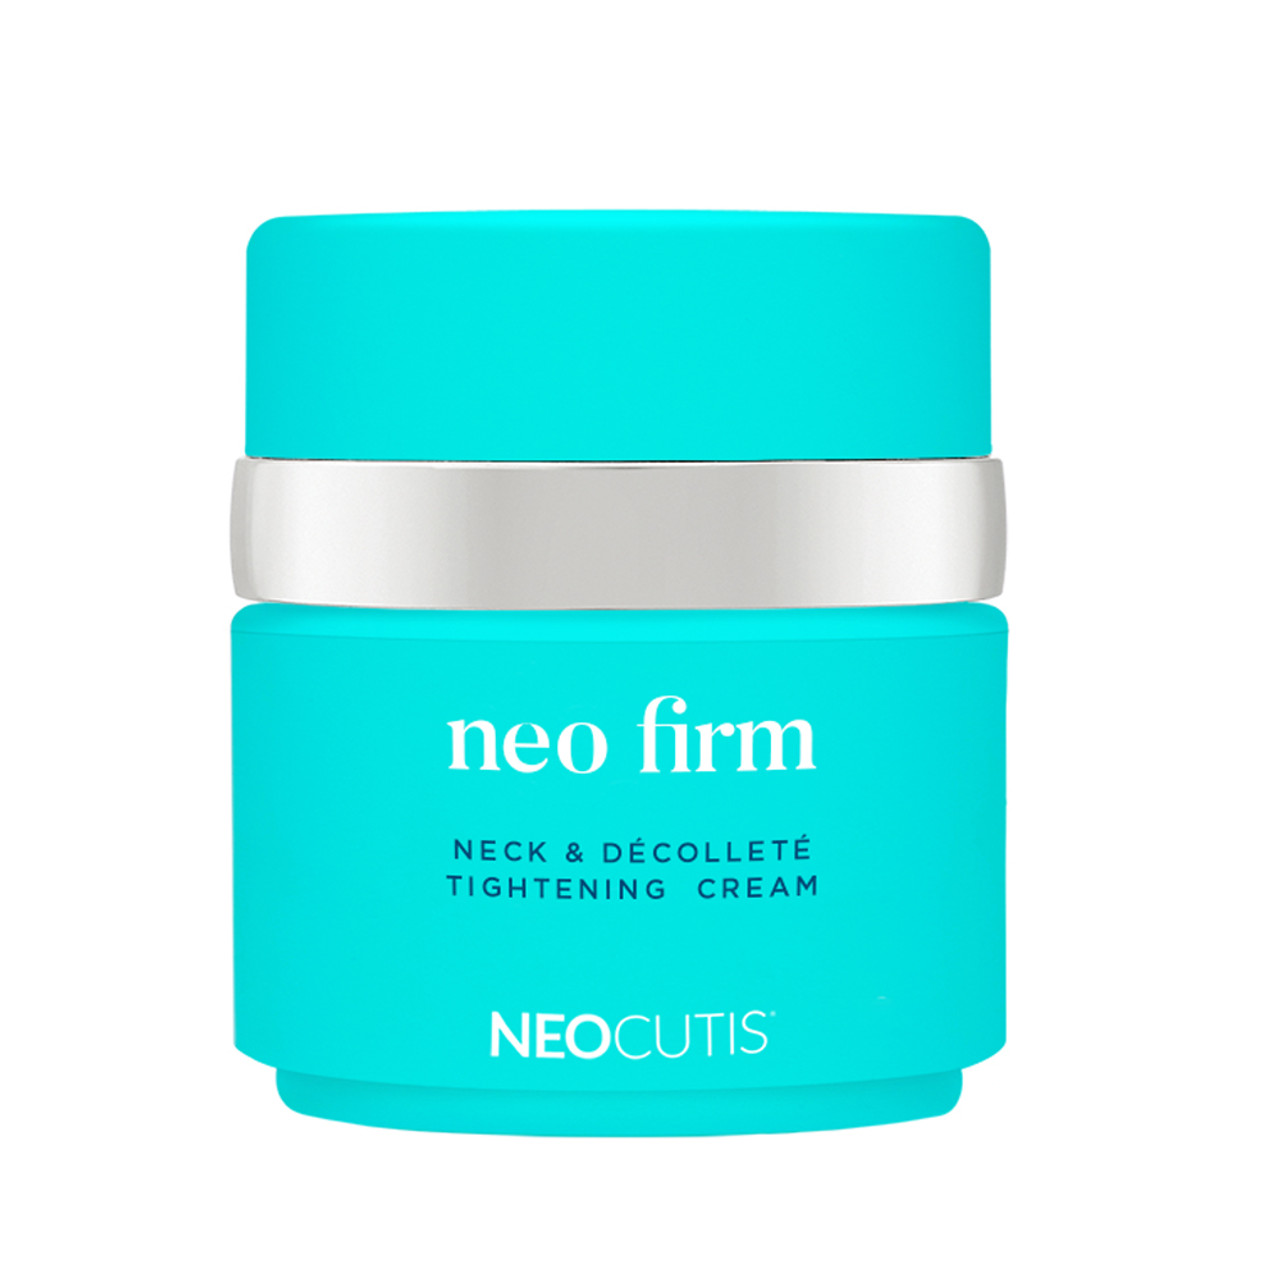 Neocutis NEO-FIRM Neck and Decollete Tightening Cream